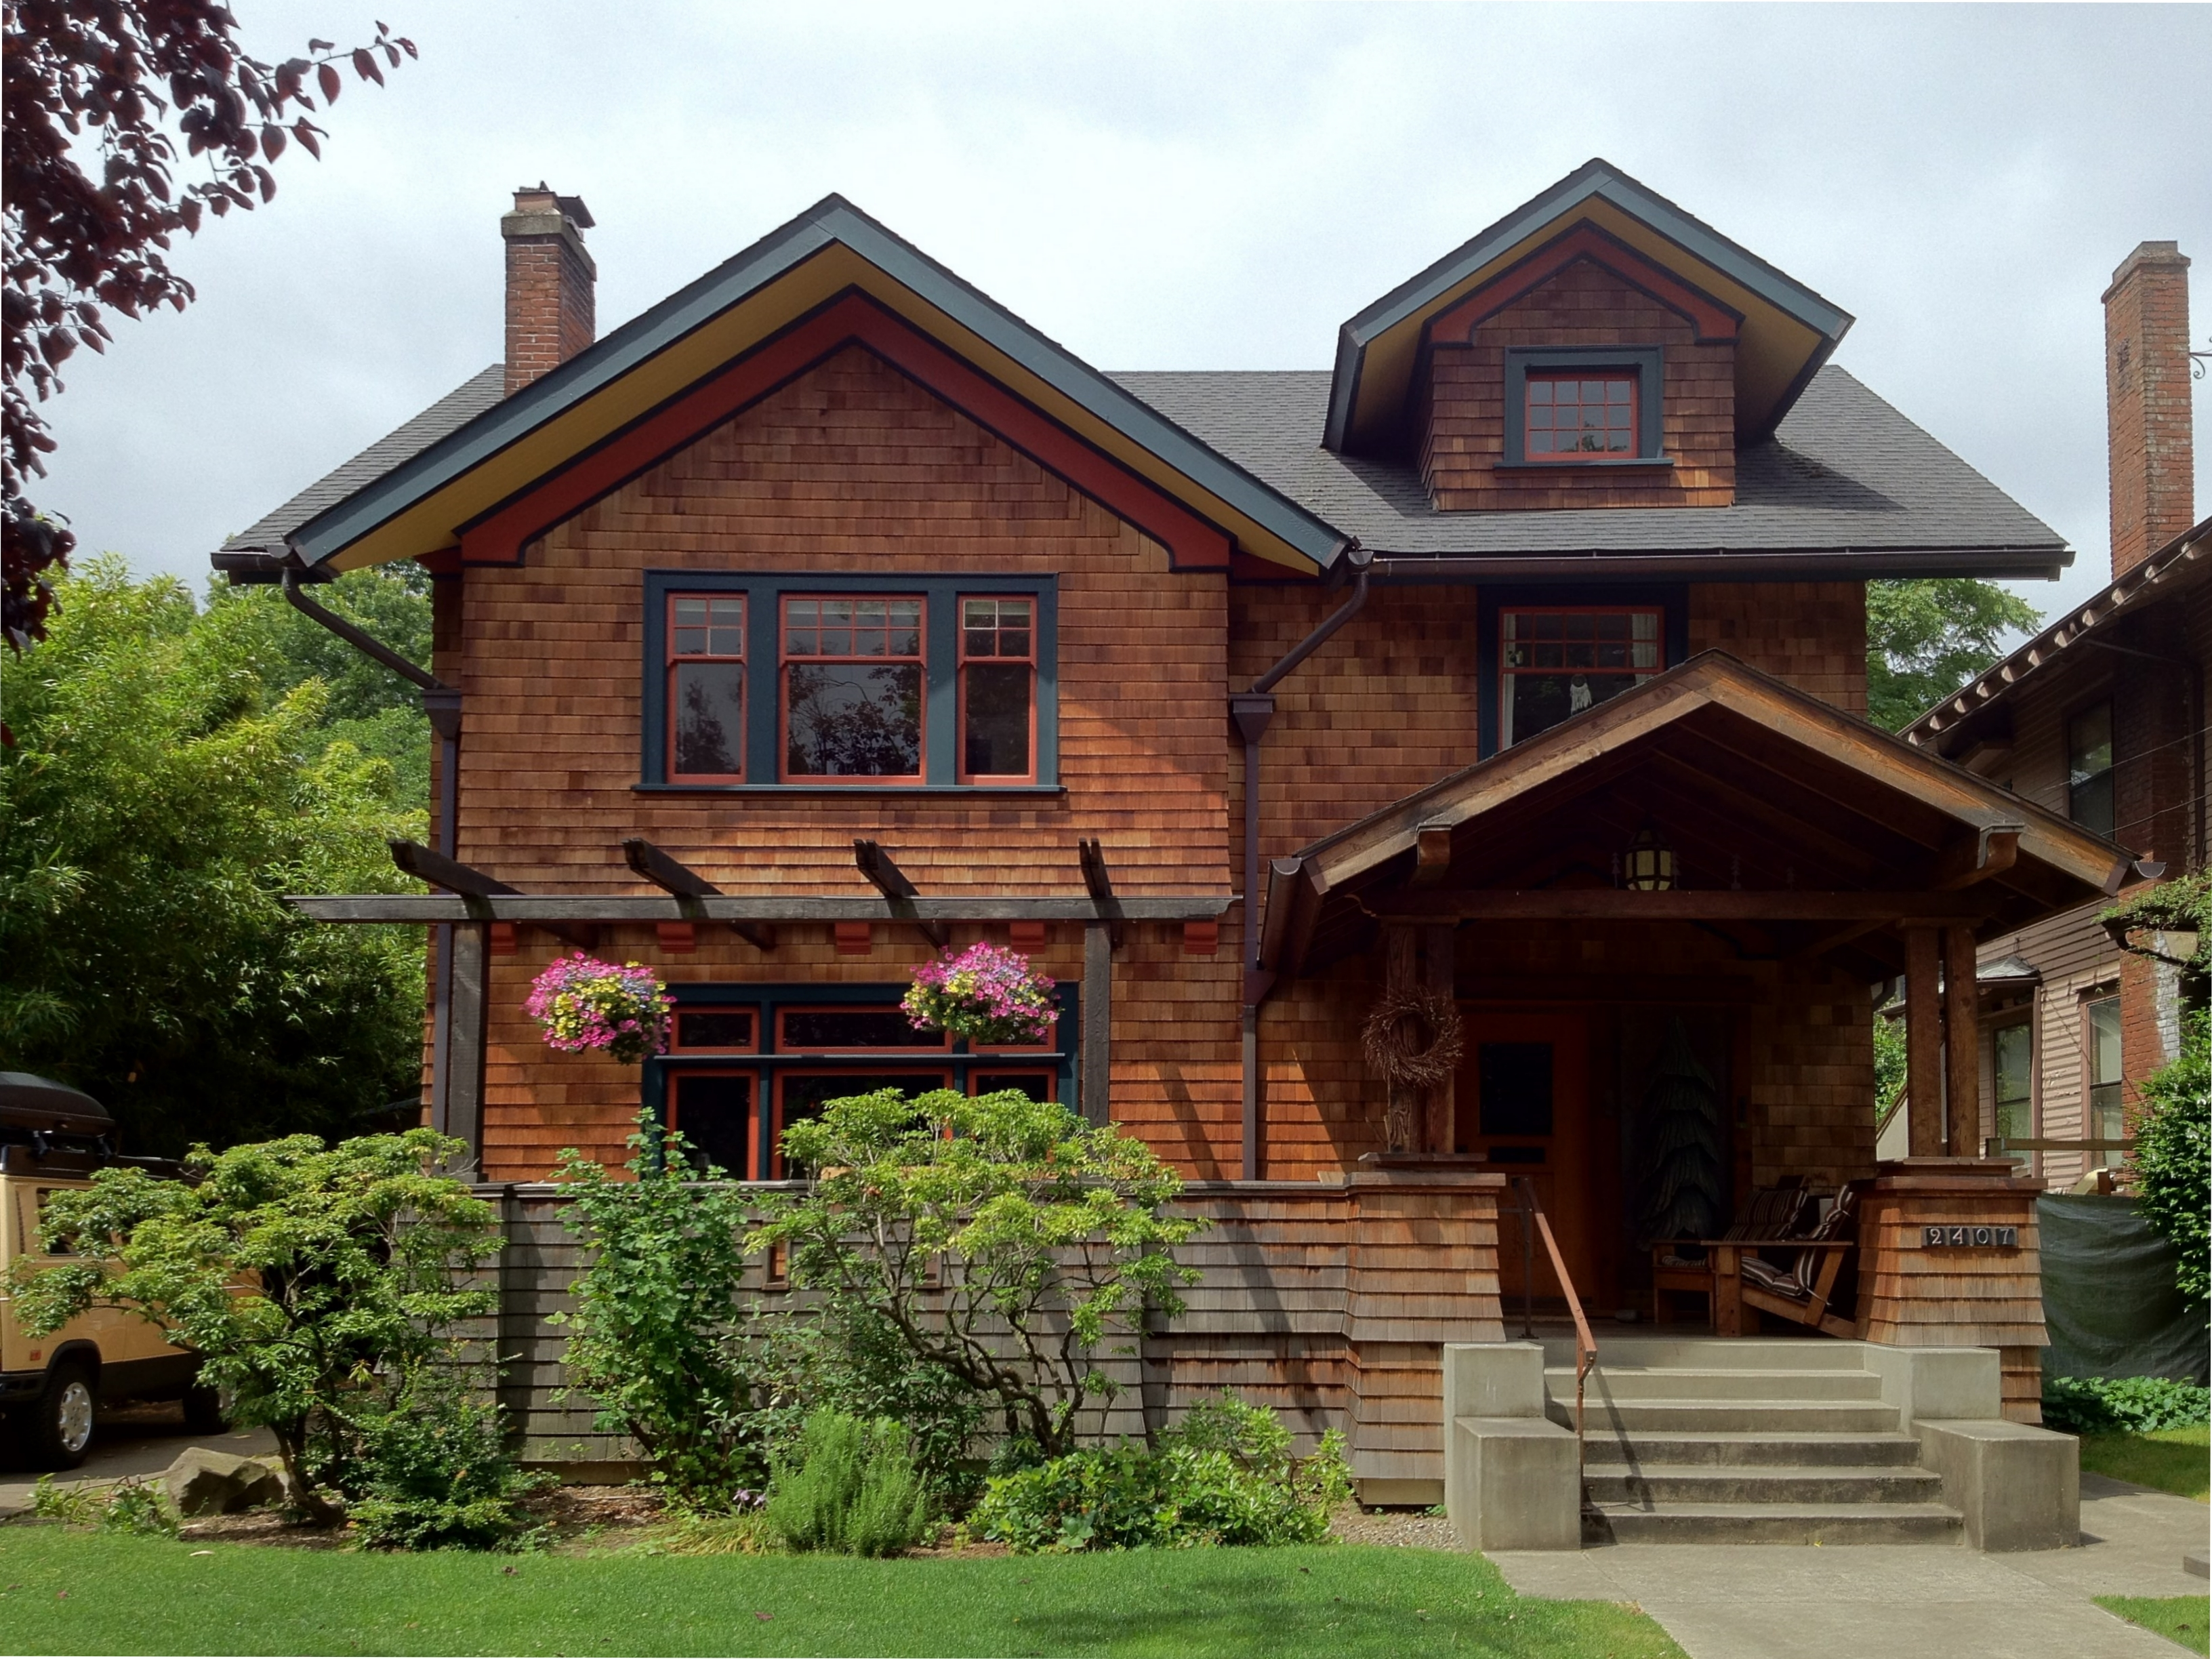 American craftsman bungalow ideas architecture plans 29270 for Craftsman style architects